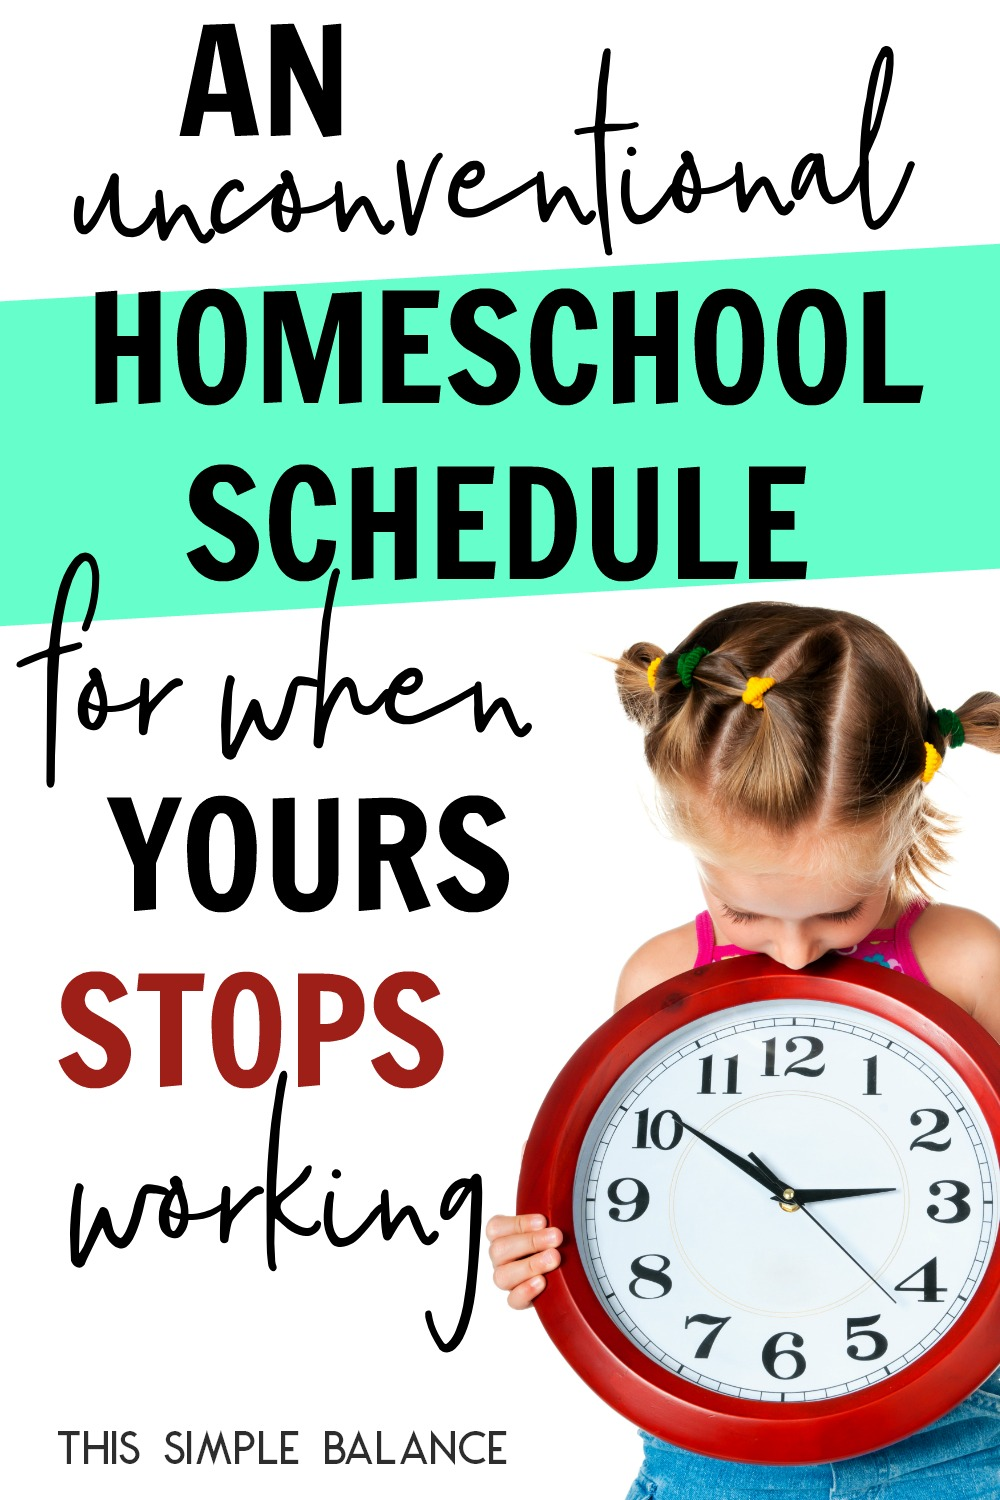 Homeschool Schedules aren't a one size fits all. What works for one family might not work for another. Try this rather unconventional homeschool schedule when yours stops working.